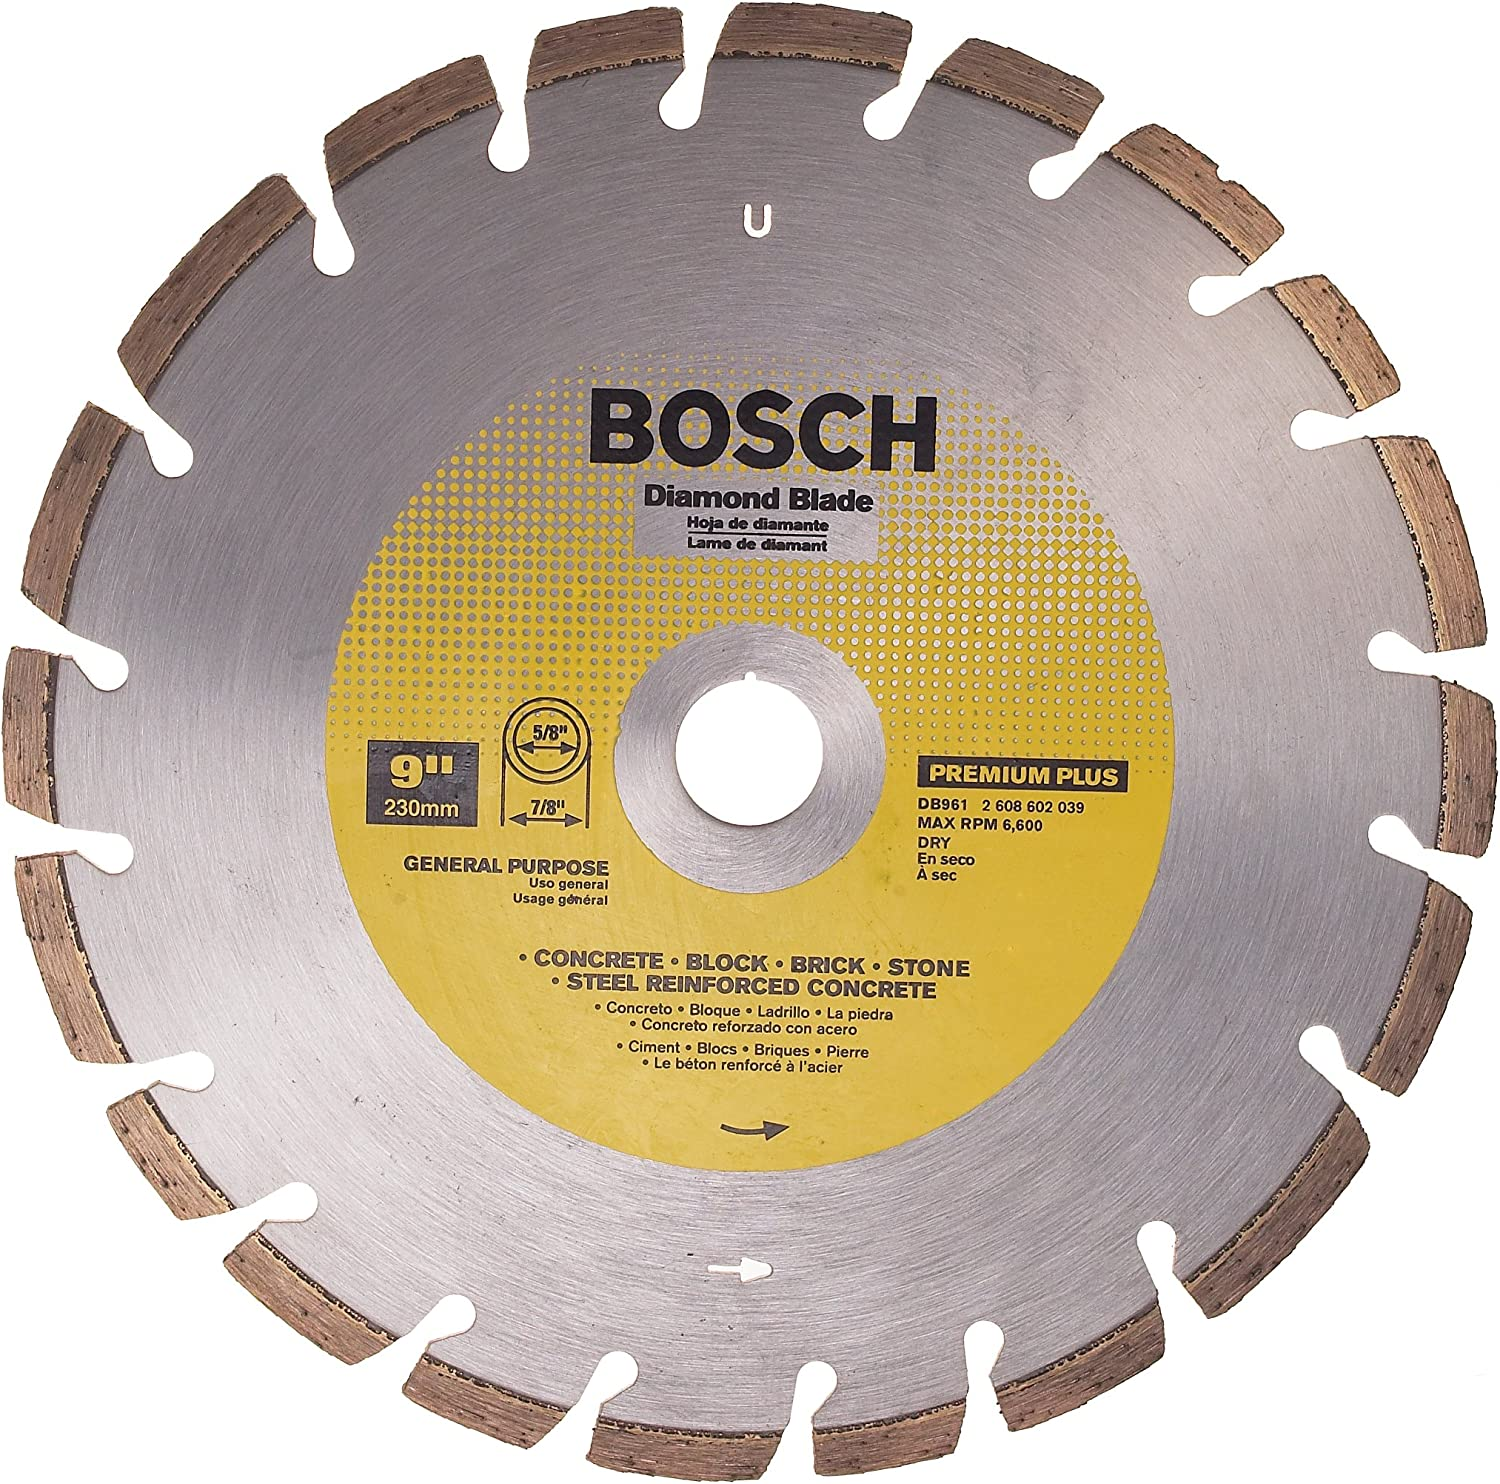 Bosch DB961 Premium Plus sold out 9-Inch Segment Dry Laser Max 45% OFF Fusion Cutting